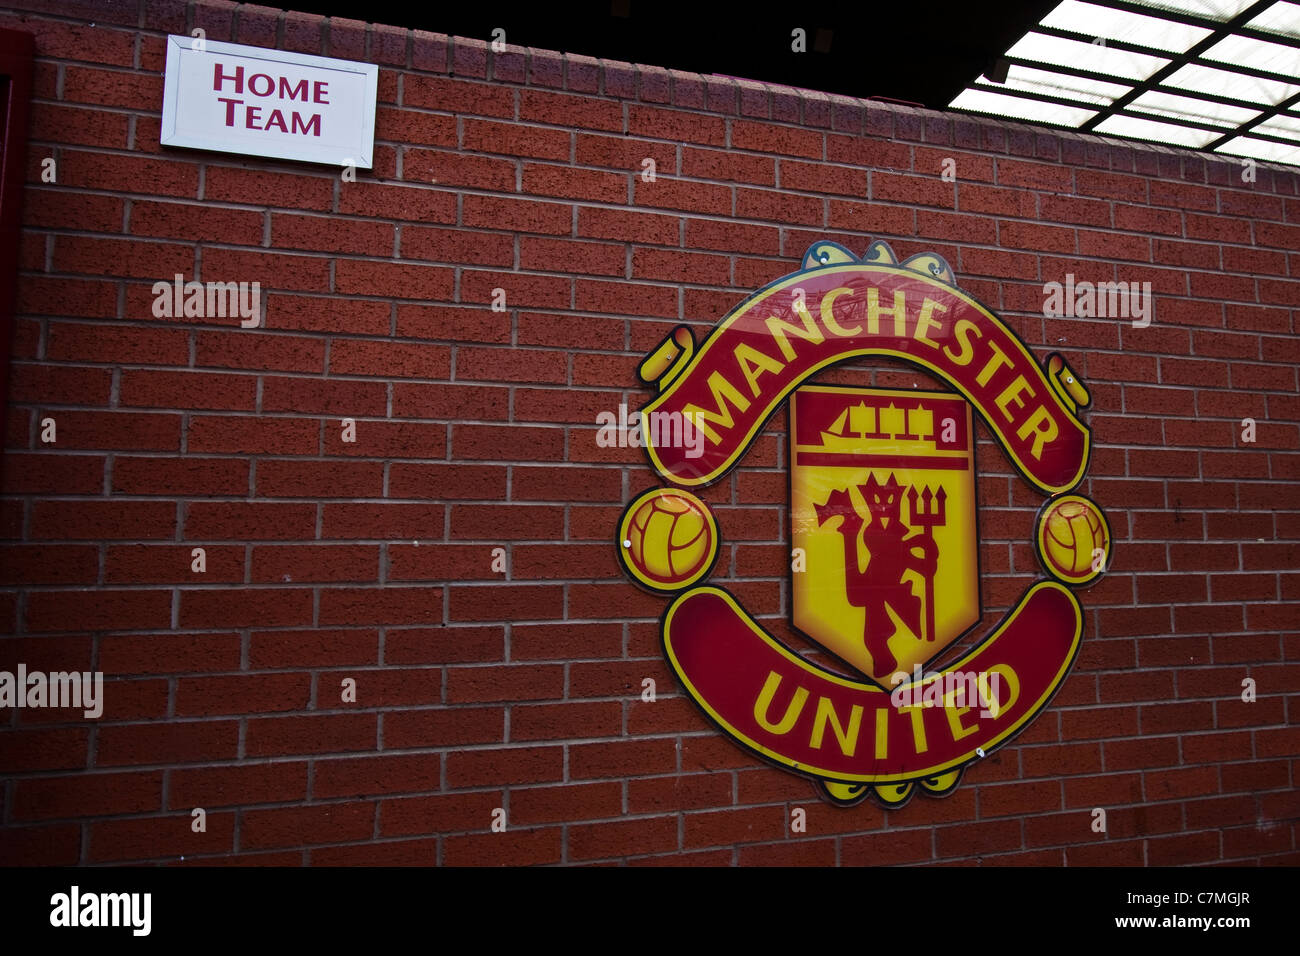 Old Trafford - Home of Manchester United - Stock Image